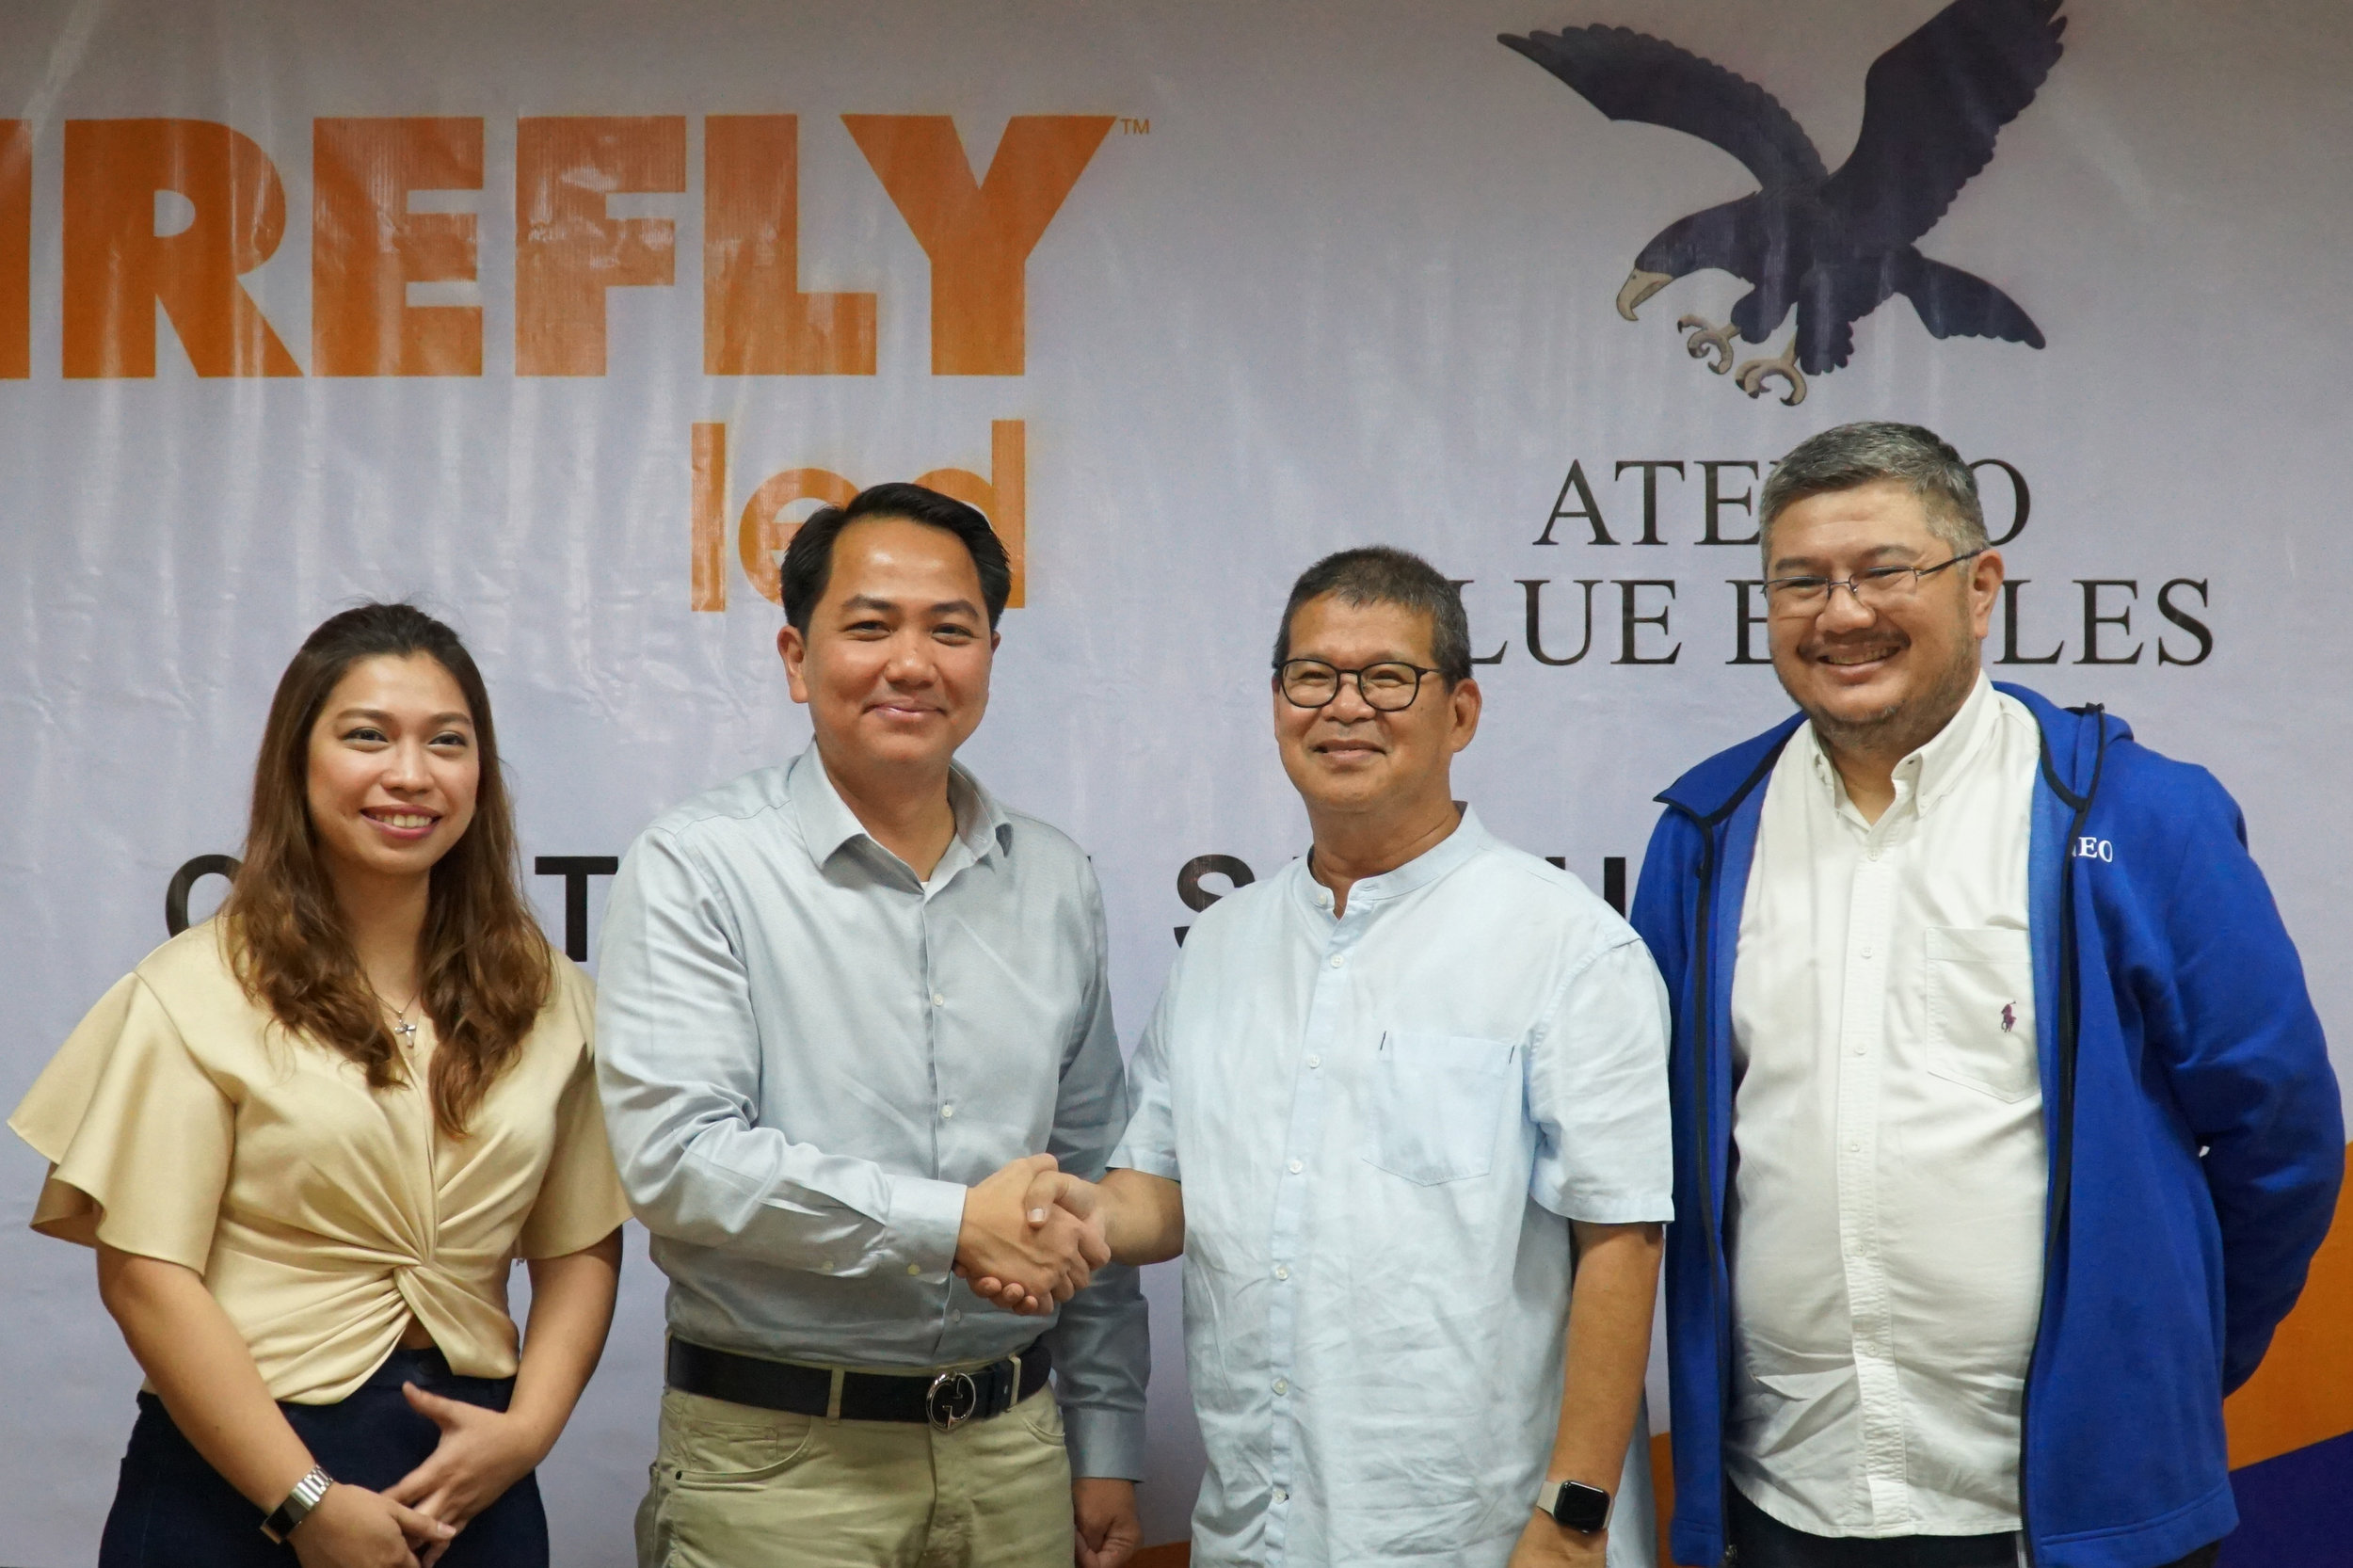 Firefly LED seals the deal with Ateneo's University Athletics' Fr. Nemesio S. Que SJ and Emmanuel T. Fernandez.jpg